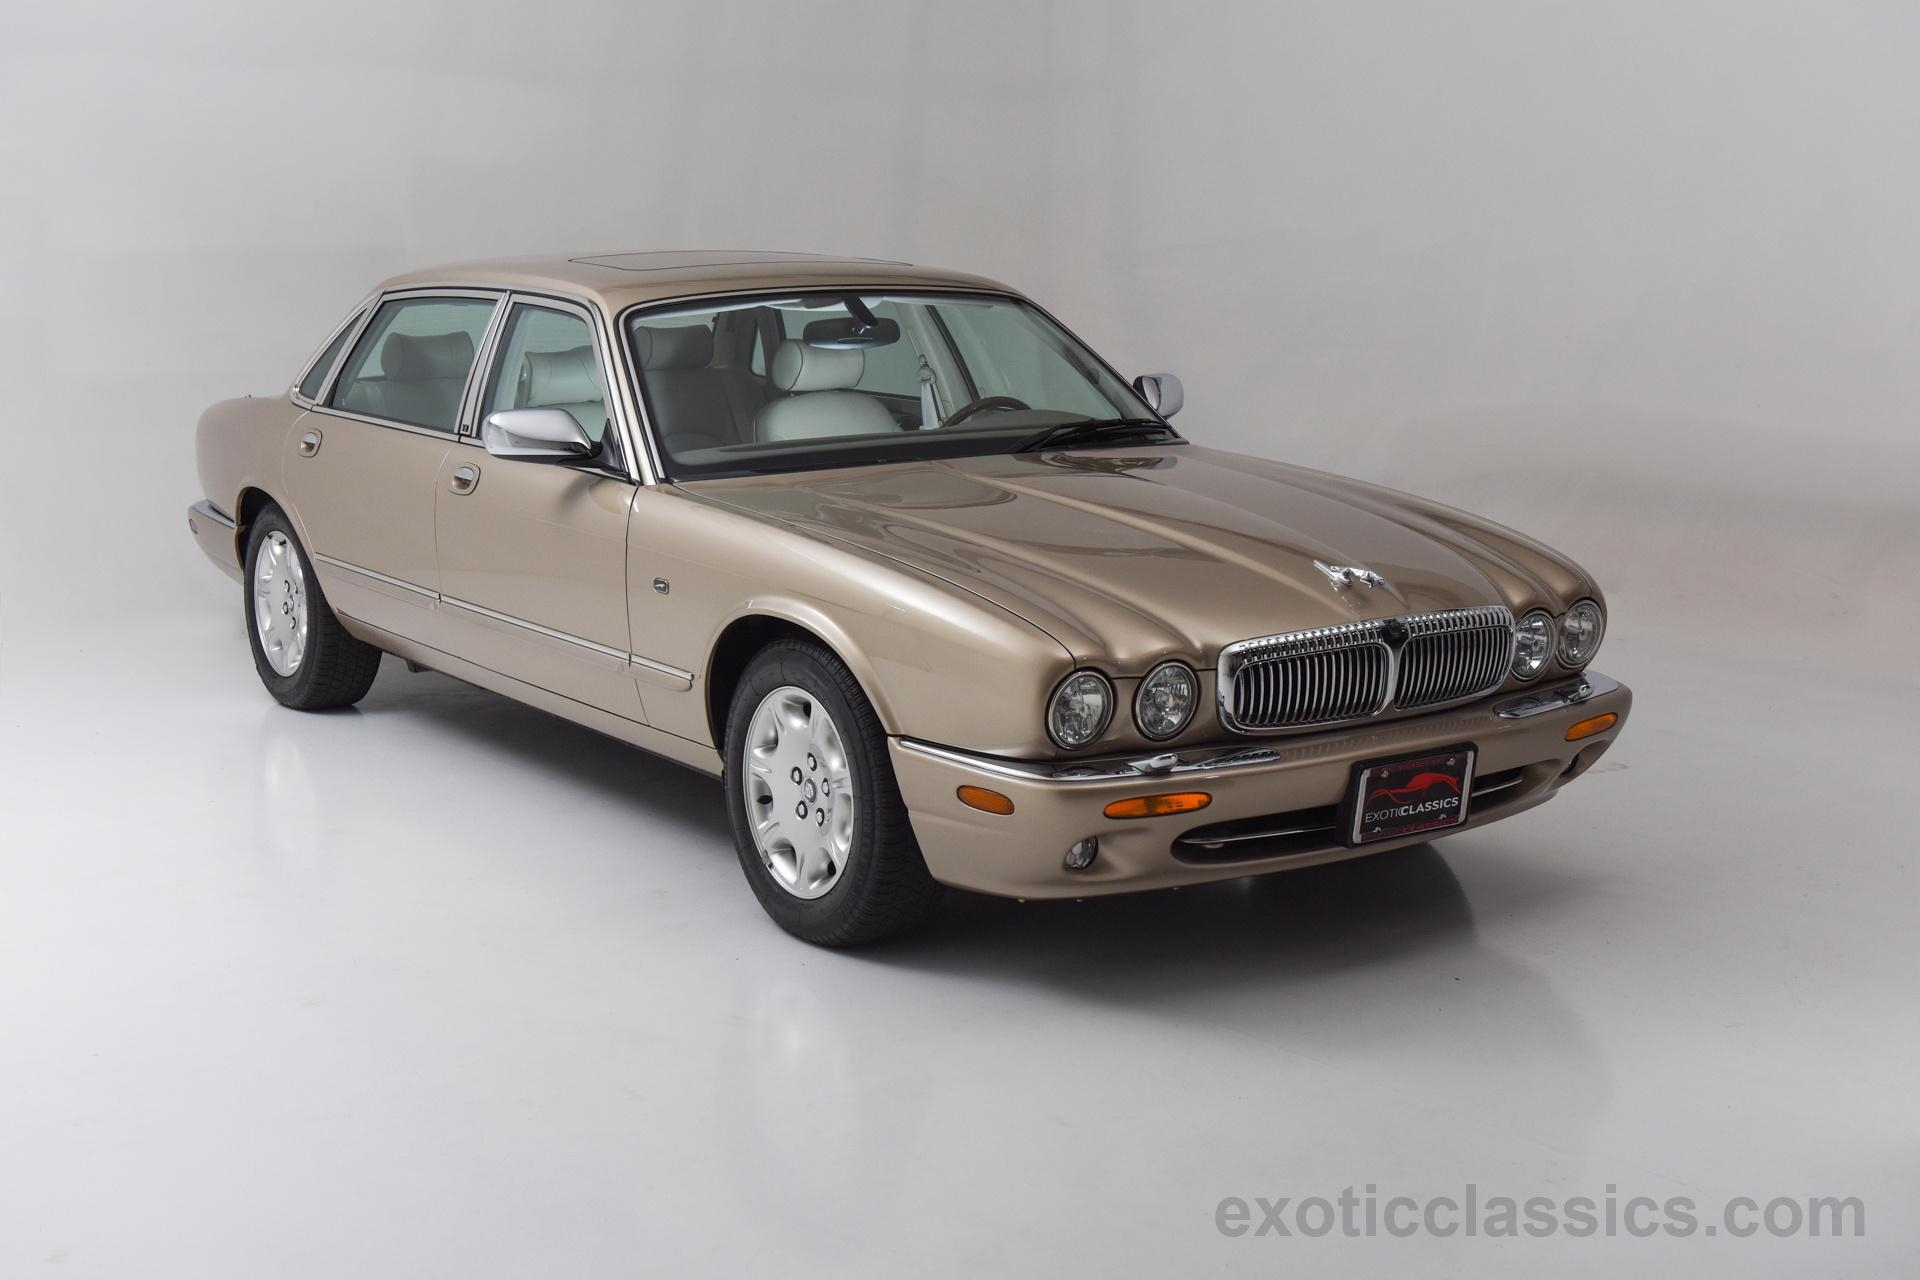 2000 Jaguar XJ8 Vanden Plas Champion Motors International l Exotic